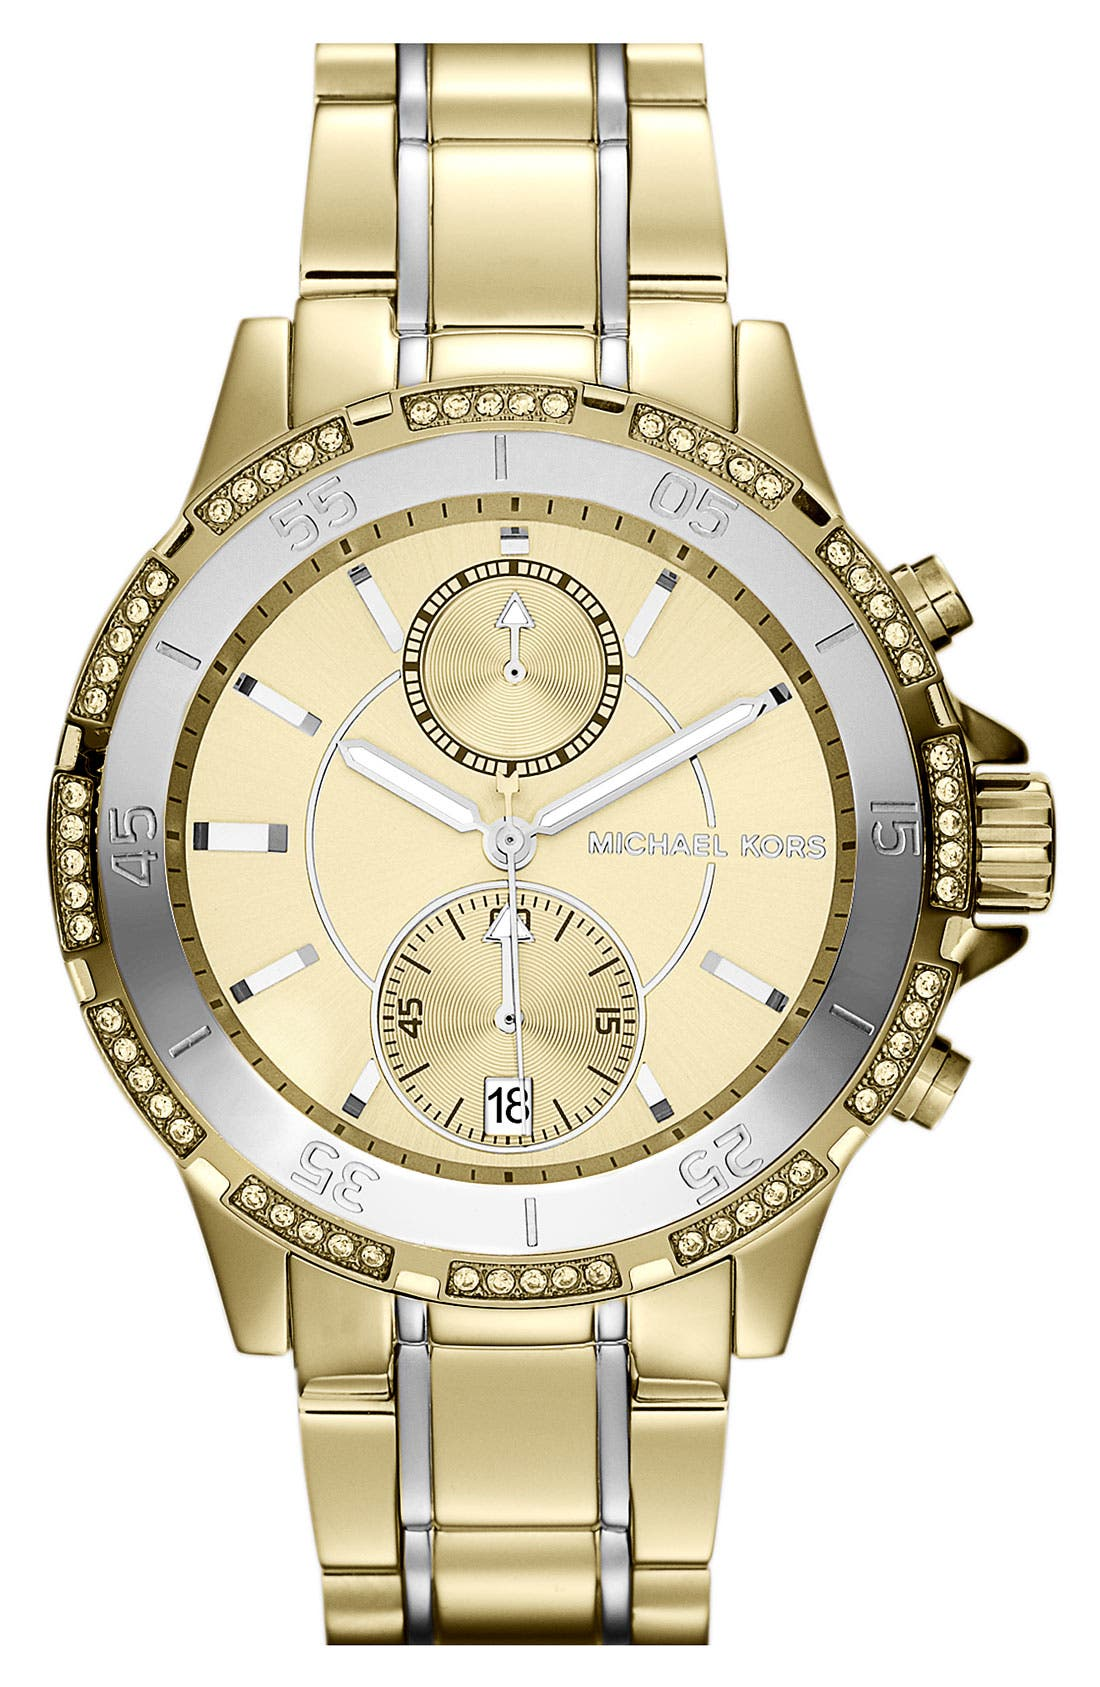 Main Image - Michael Kors 'Garret' Chronograph & Crystal Watch